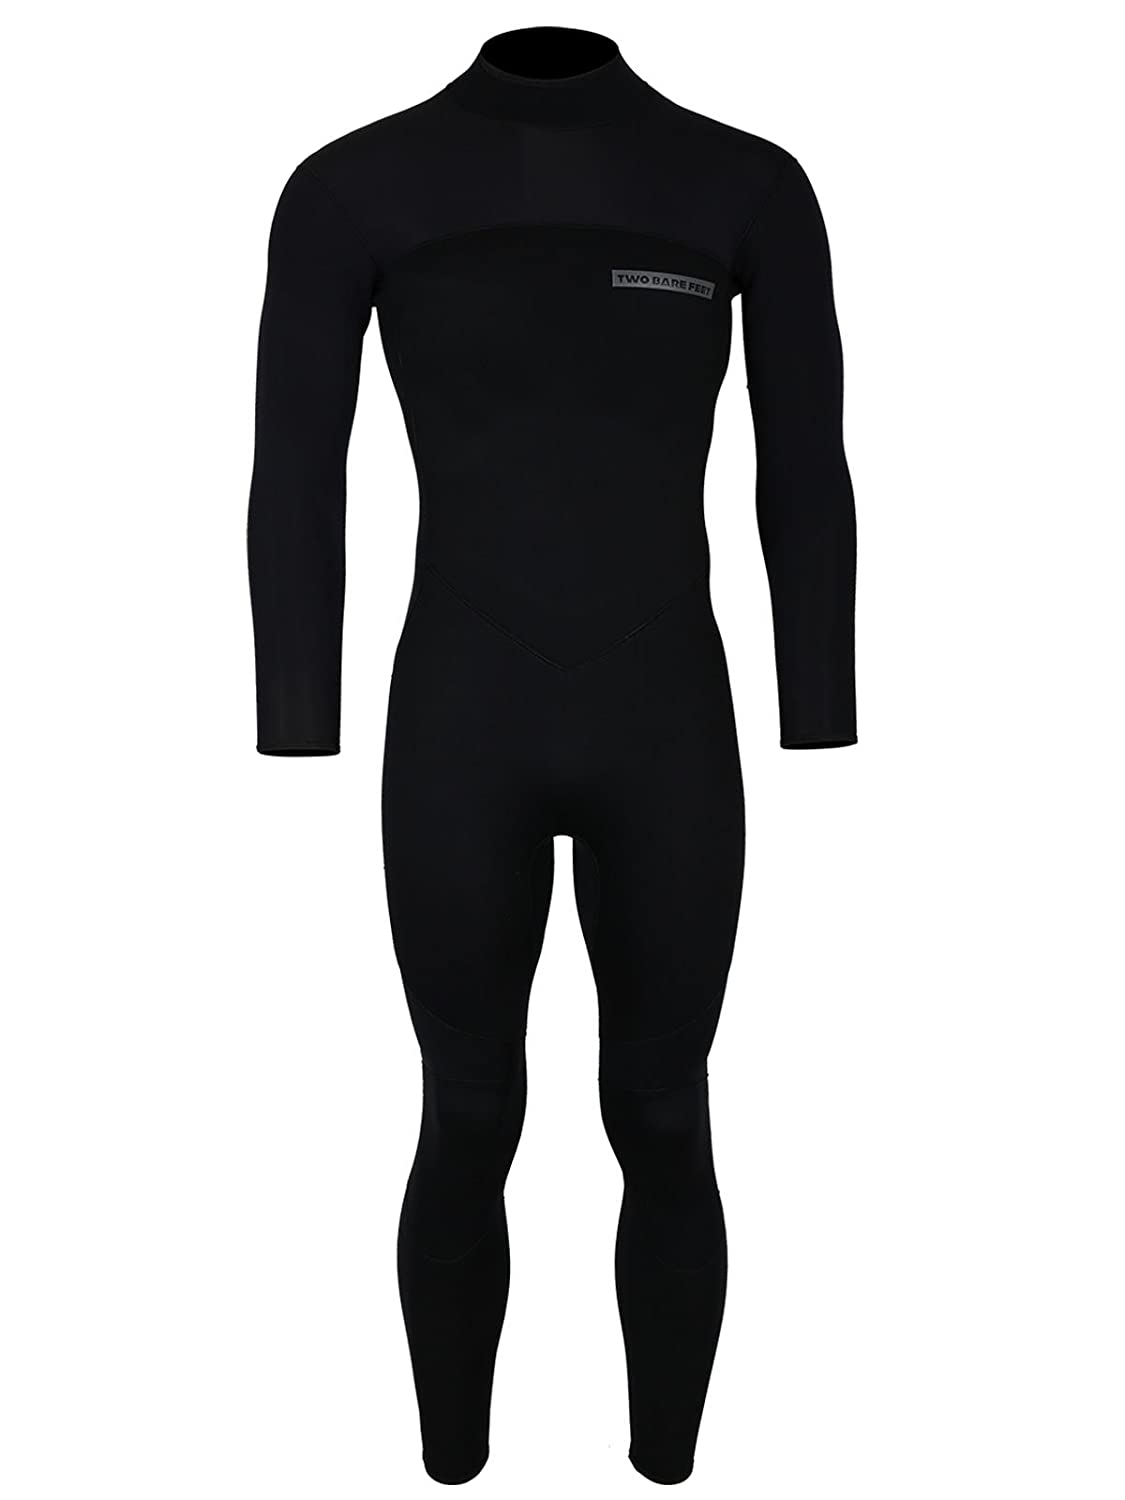 1a6b5827a300 Two Bare Feet MD THUNDERCLAP Mens 5/4mm Winter Wetsuit Thick Warm:  Amazon.co.uk: Sports & Outdoors